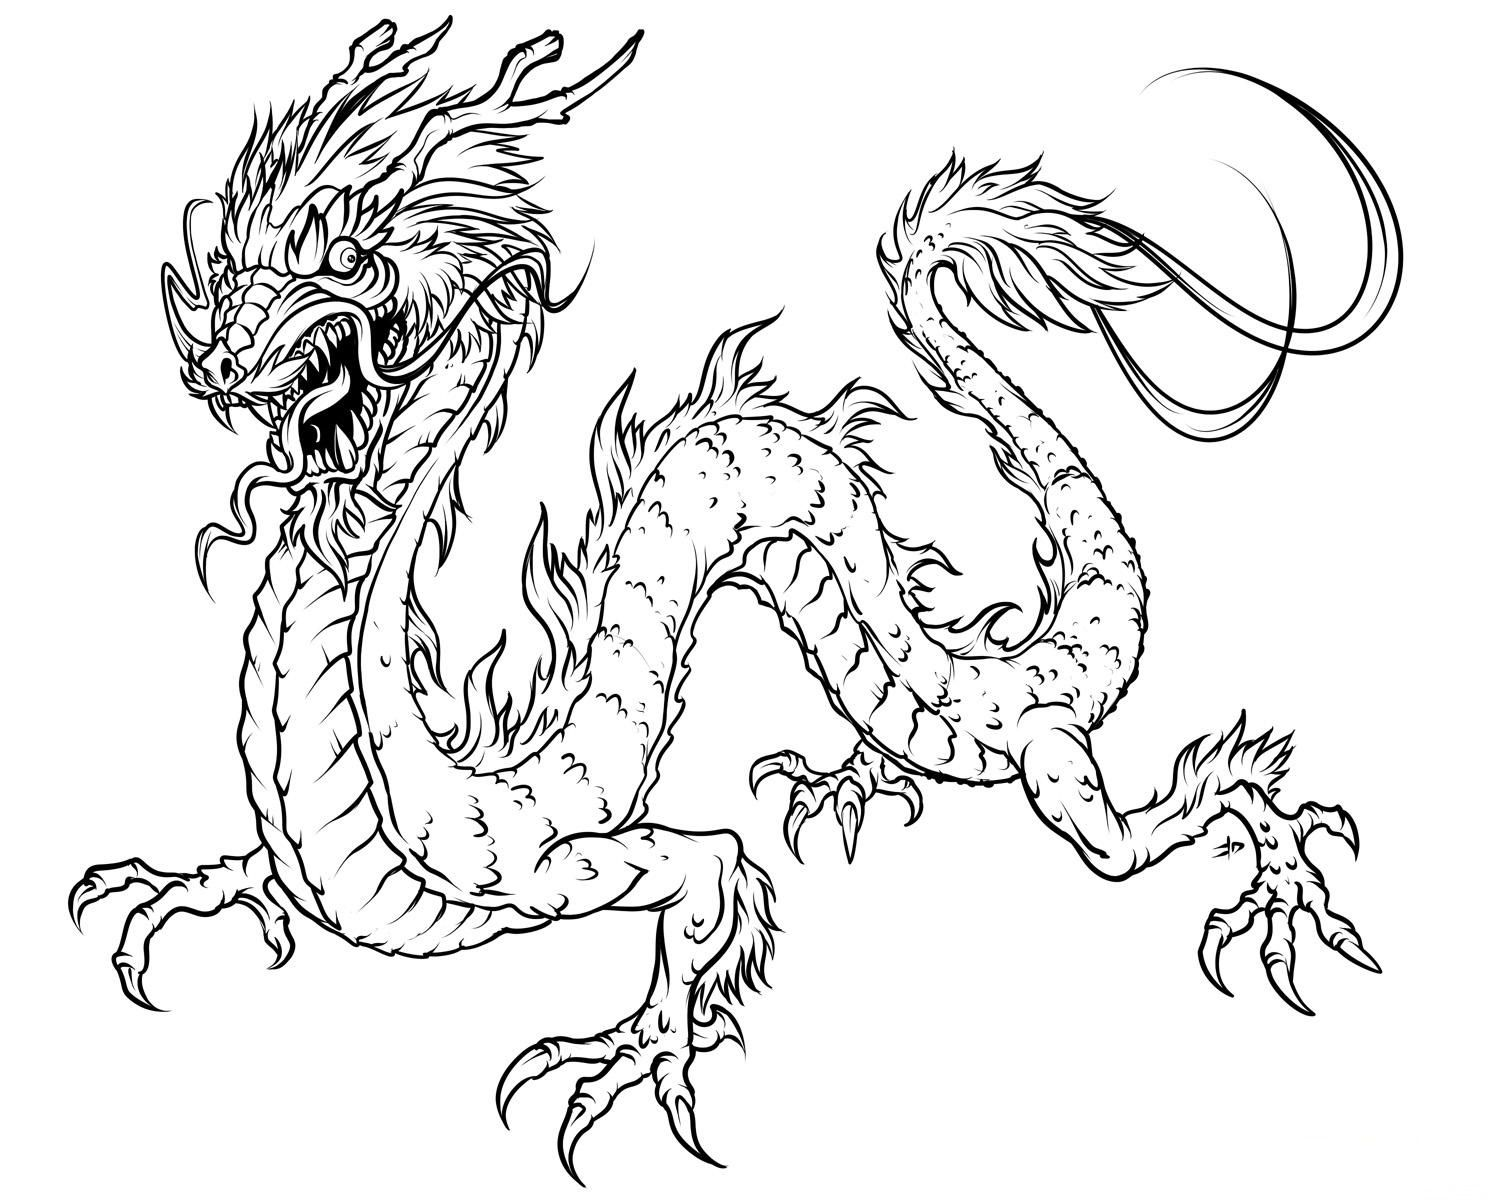 dragons and fairies coloring pages below is 10 realistic dragon coloring pages that i promise - Coloring Pages Dragons Fairies